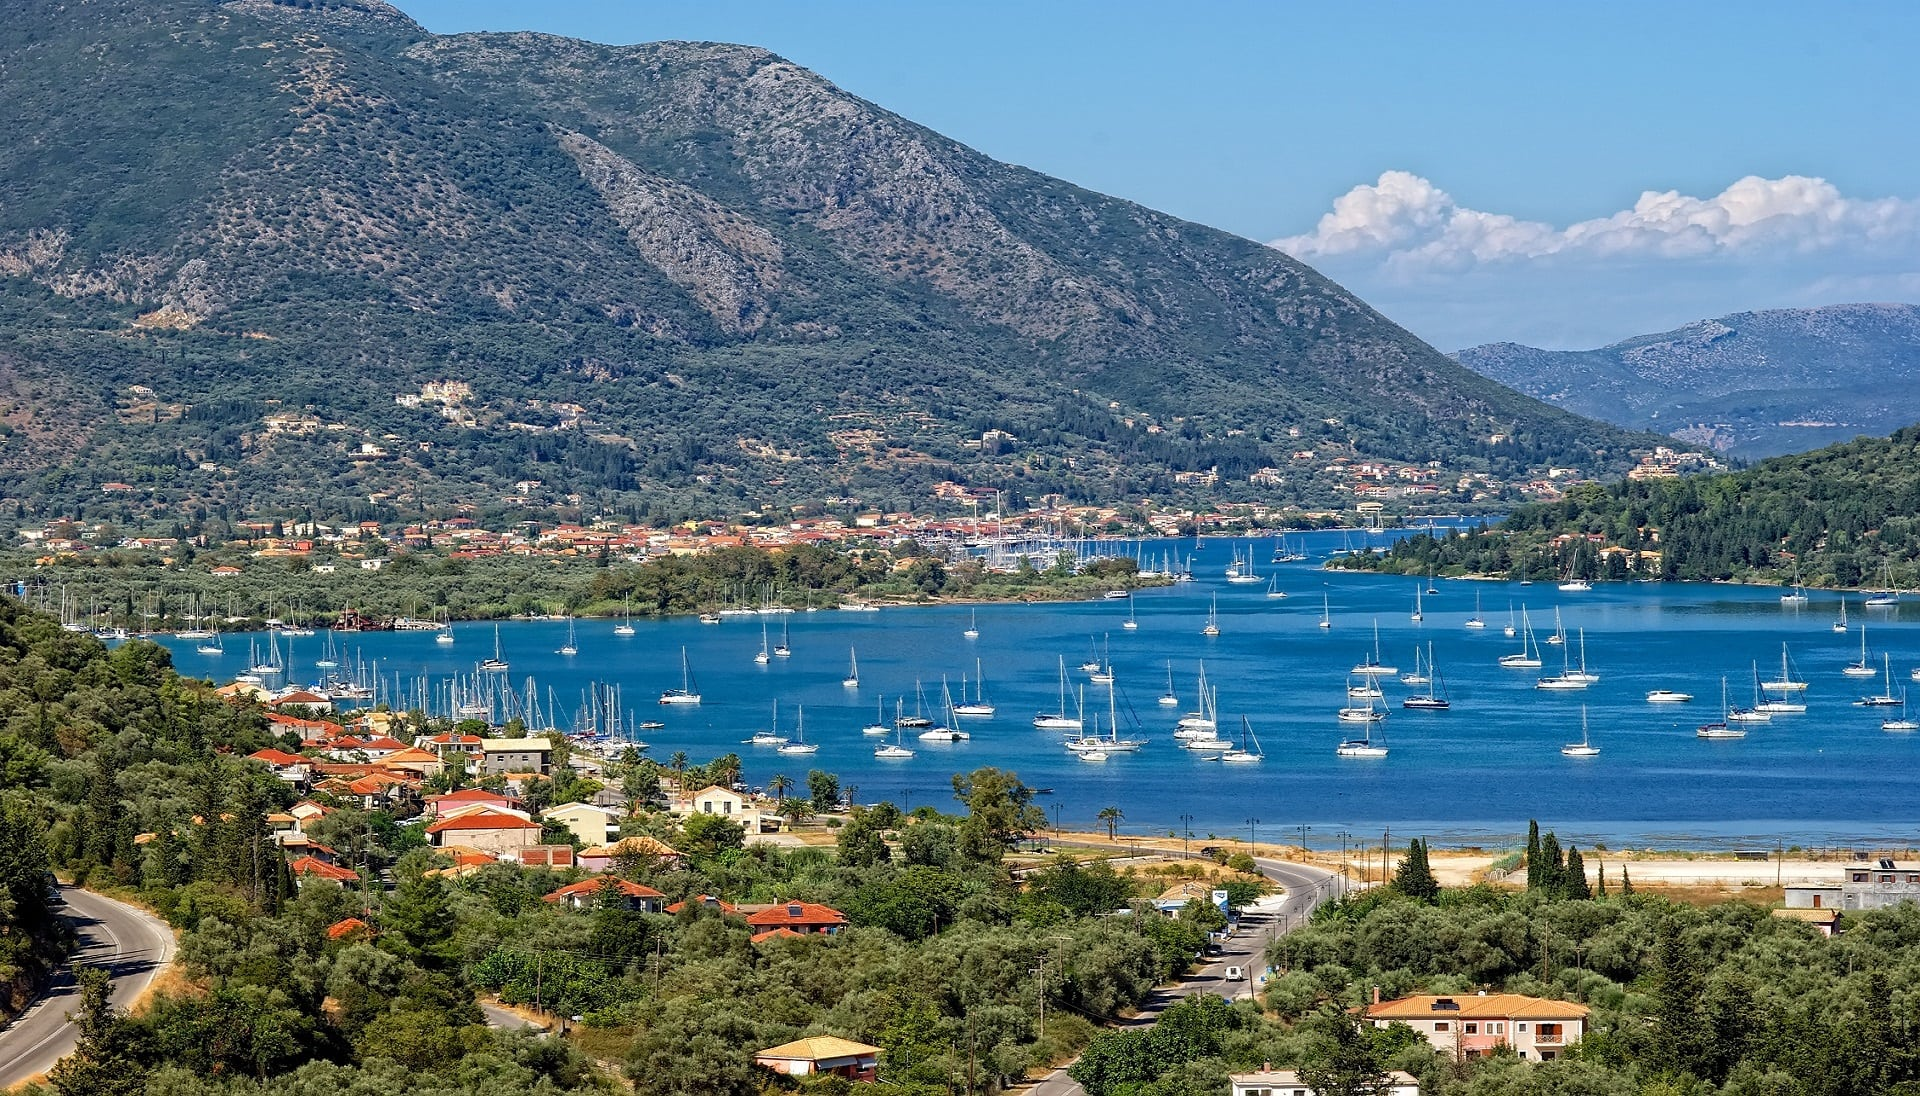 bay of Vlicho, a small village of Lefkada near Nydri, full of sailboats